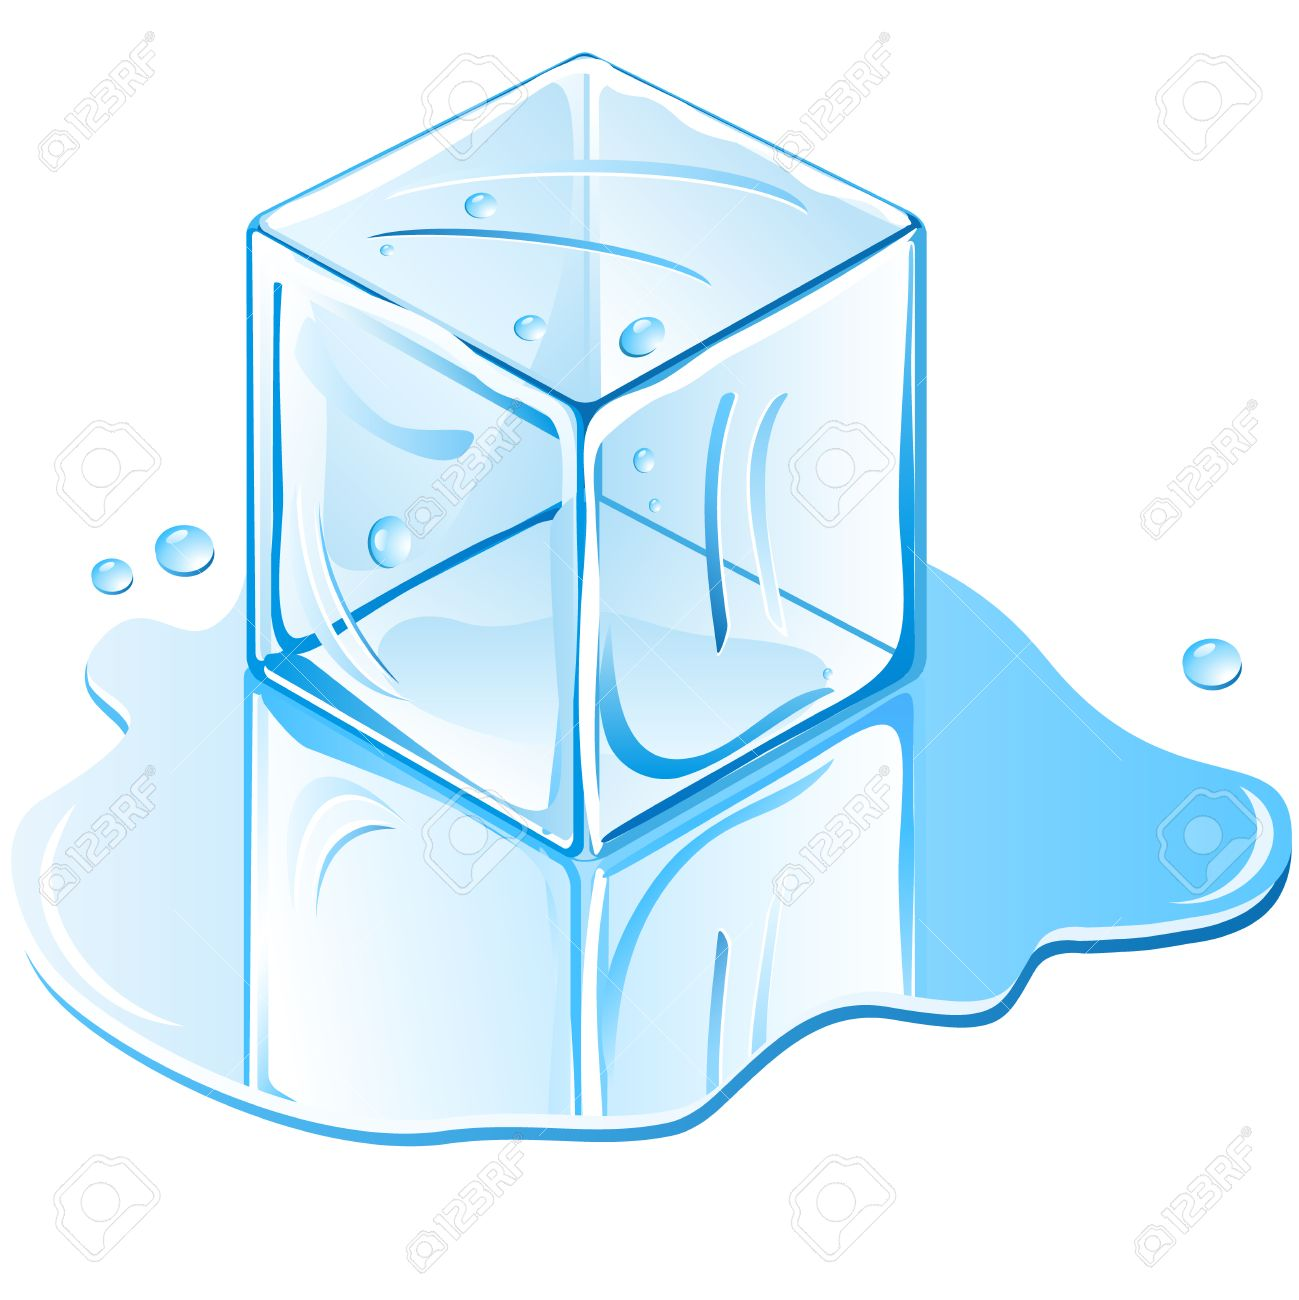 Ice cubes clipart 3 » Clipart Station.